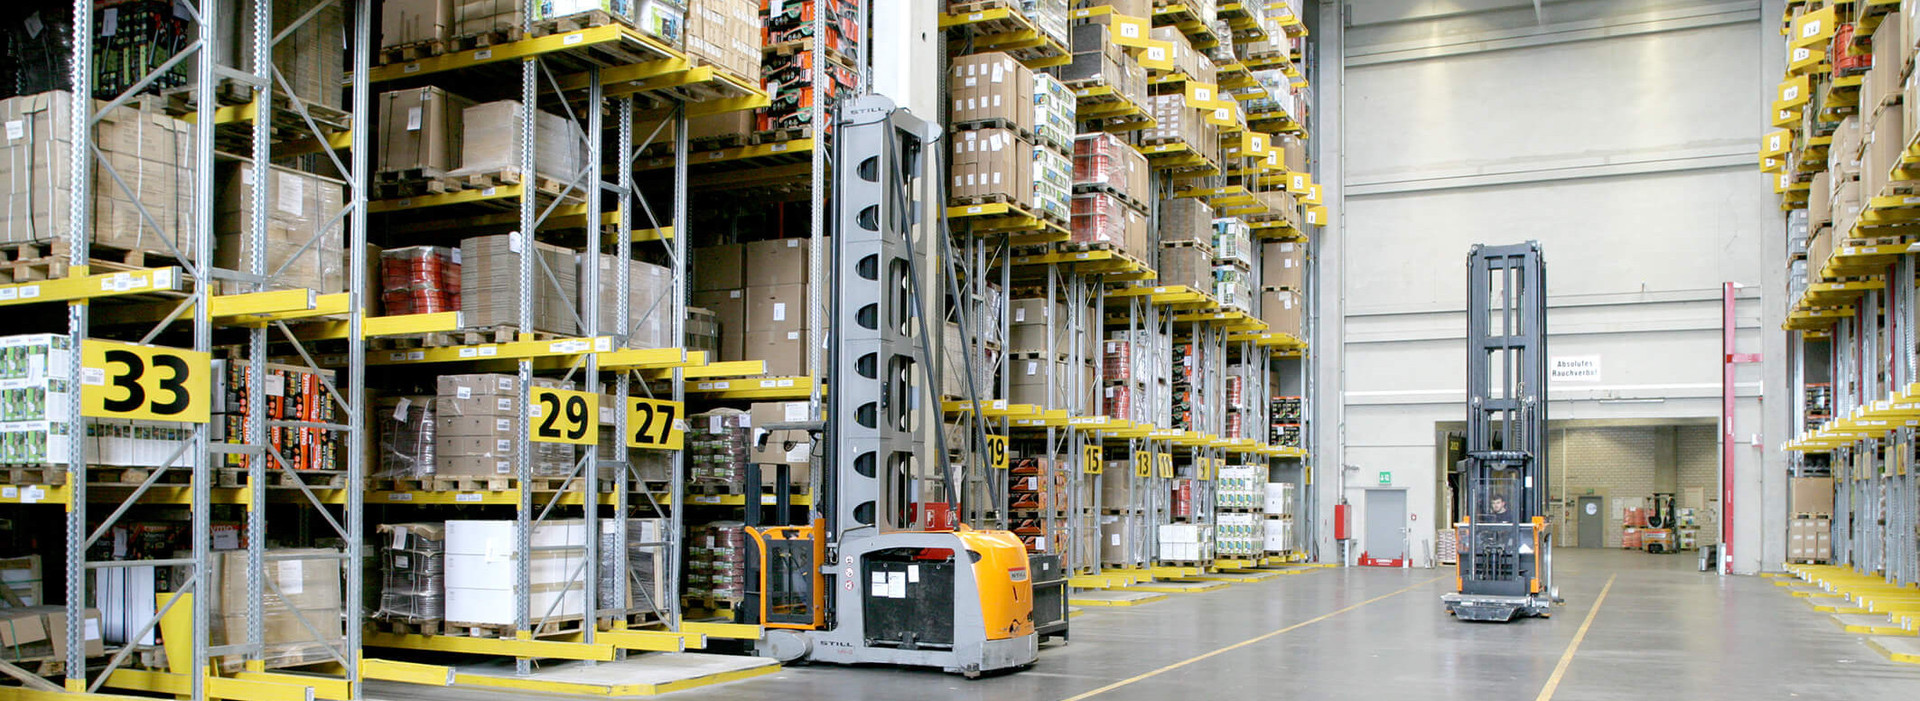 The picture shows a warehouse in which a warehouse management software with SAP is integrated